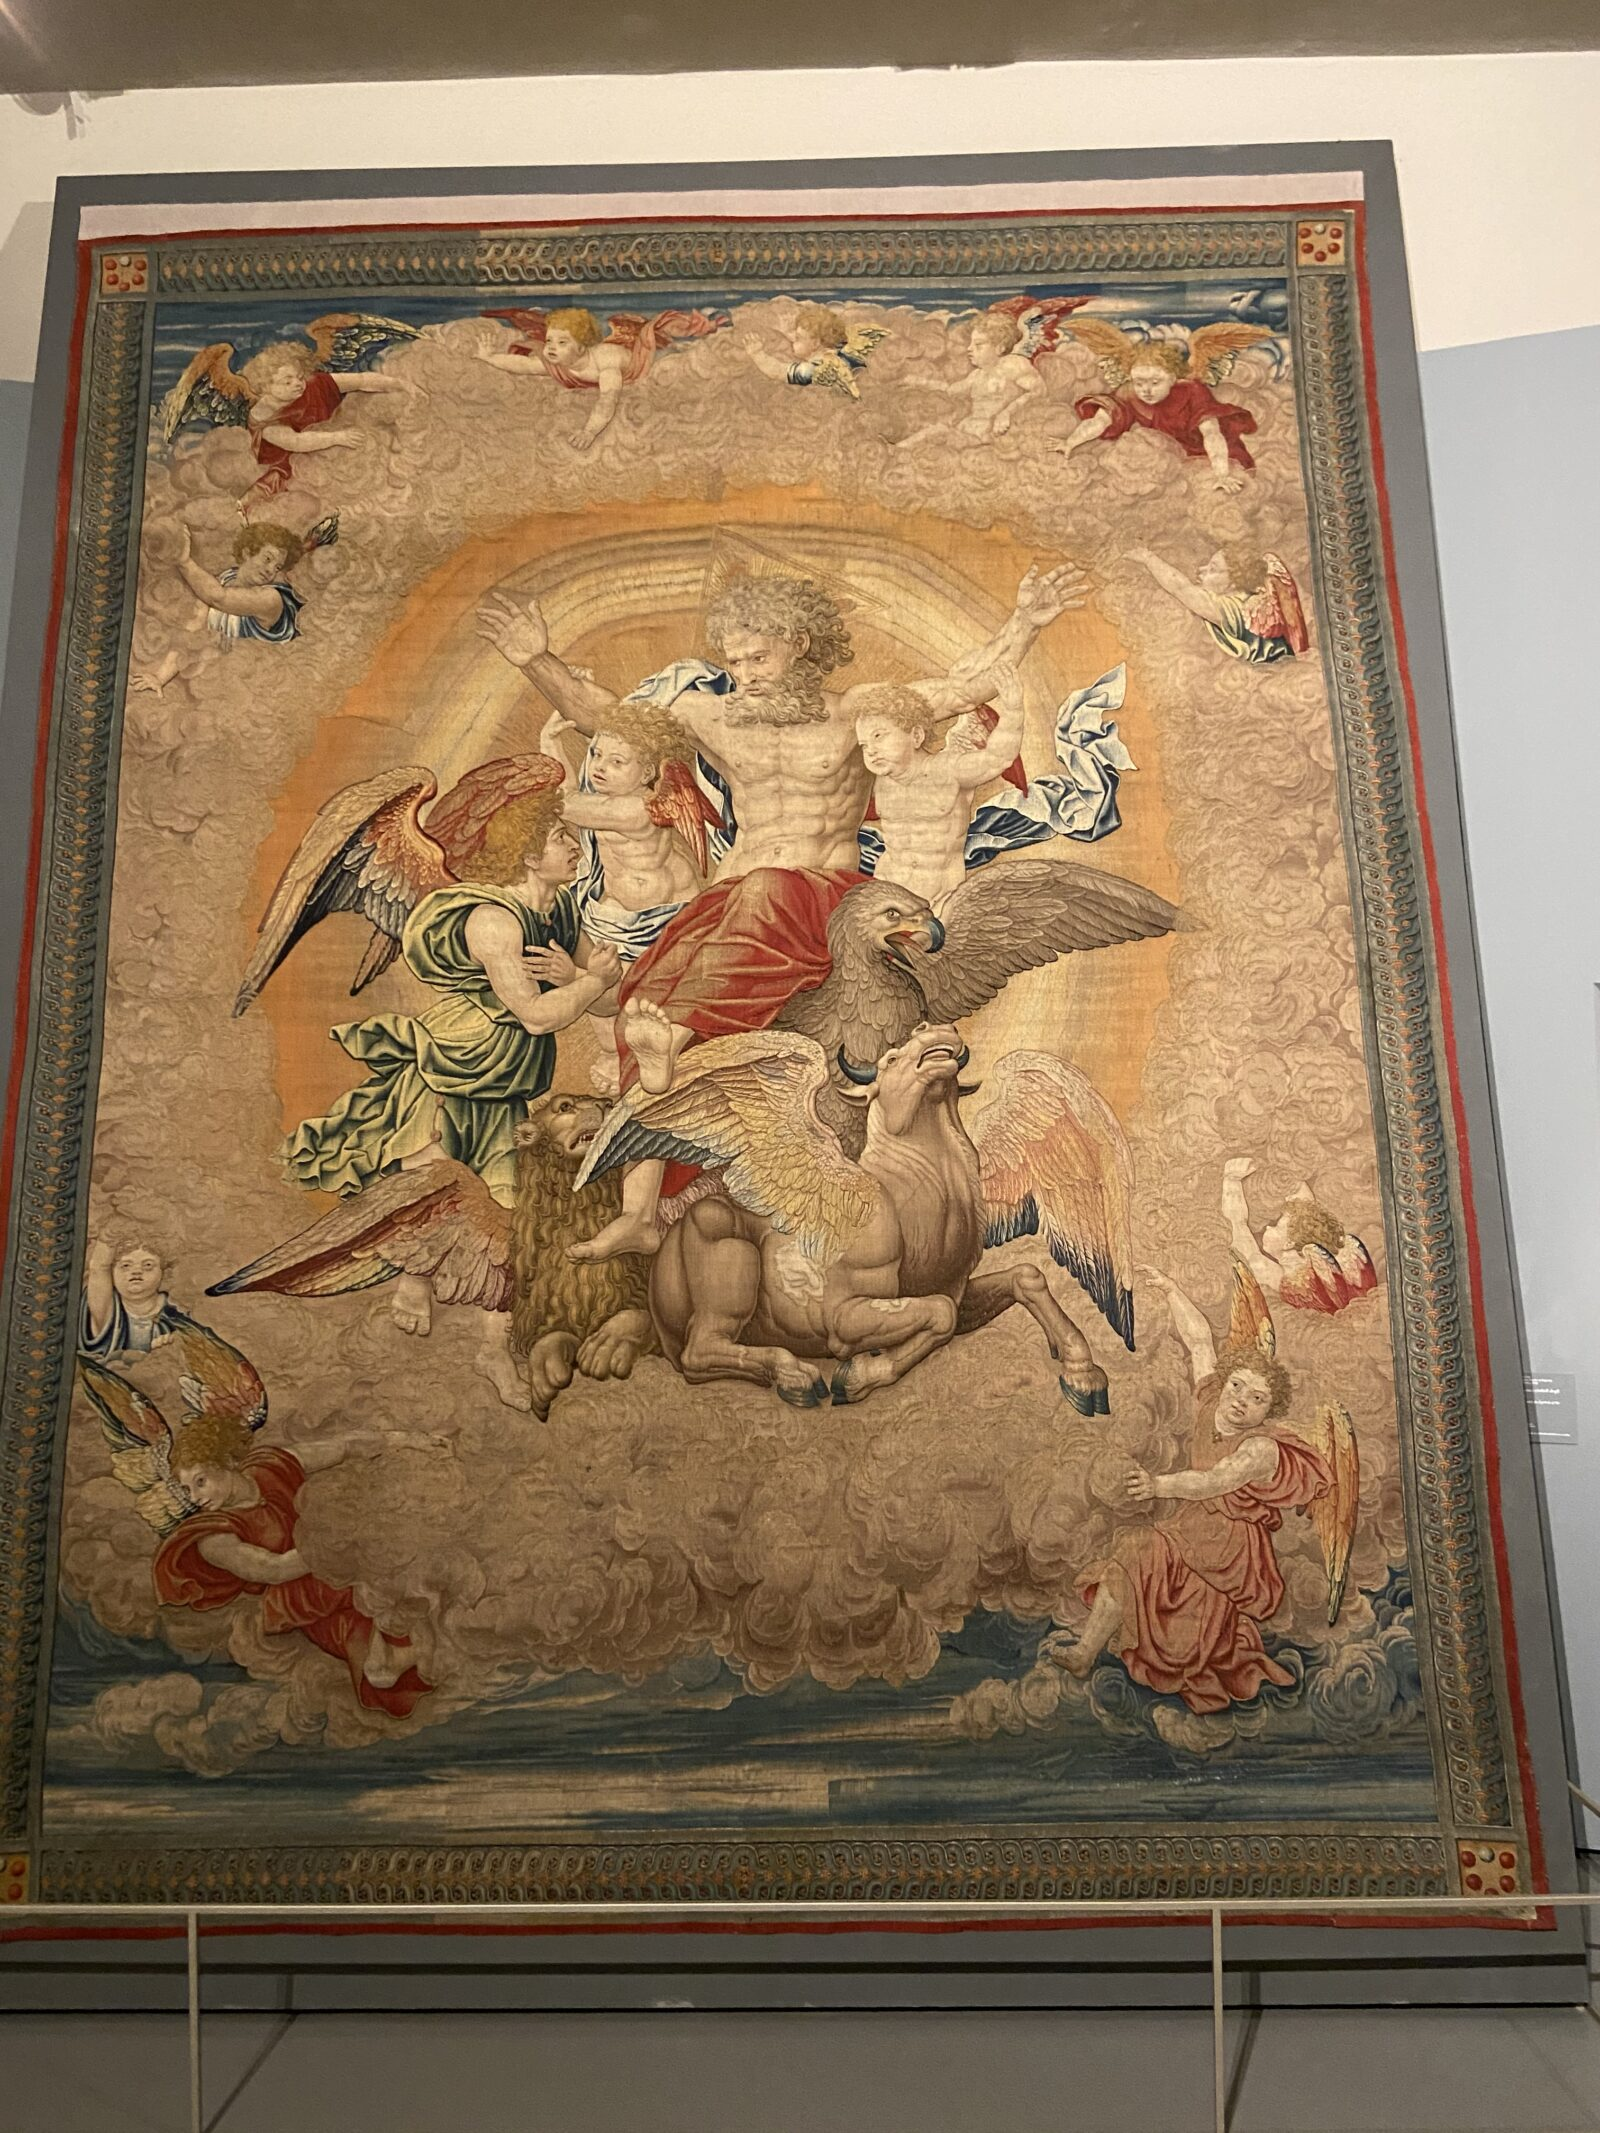 Raphael also did tapestries.